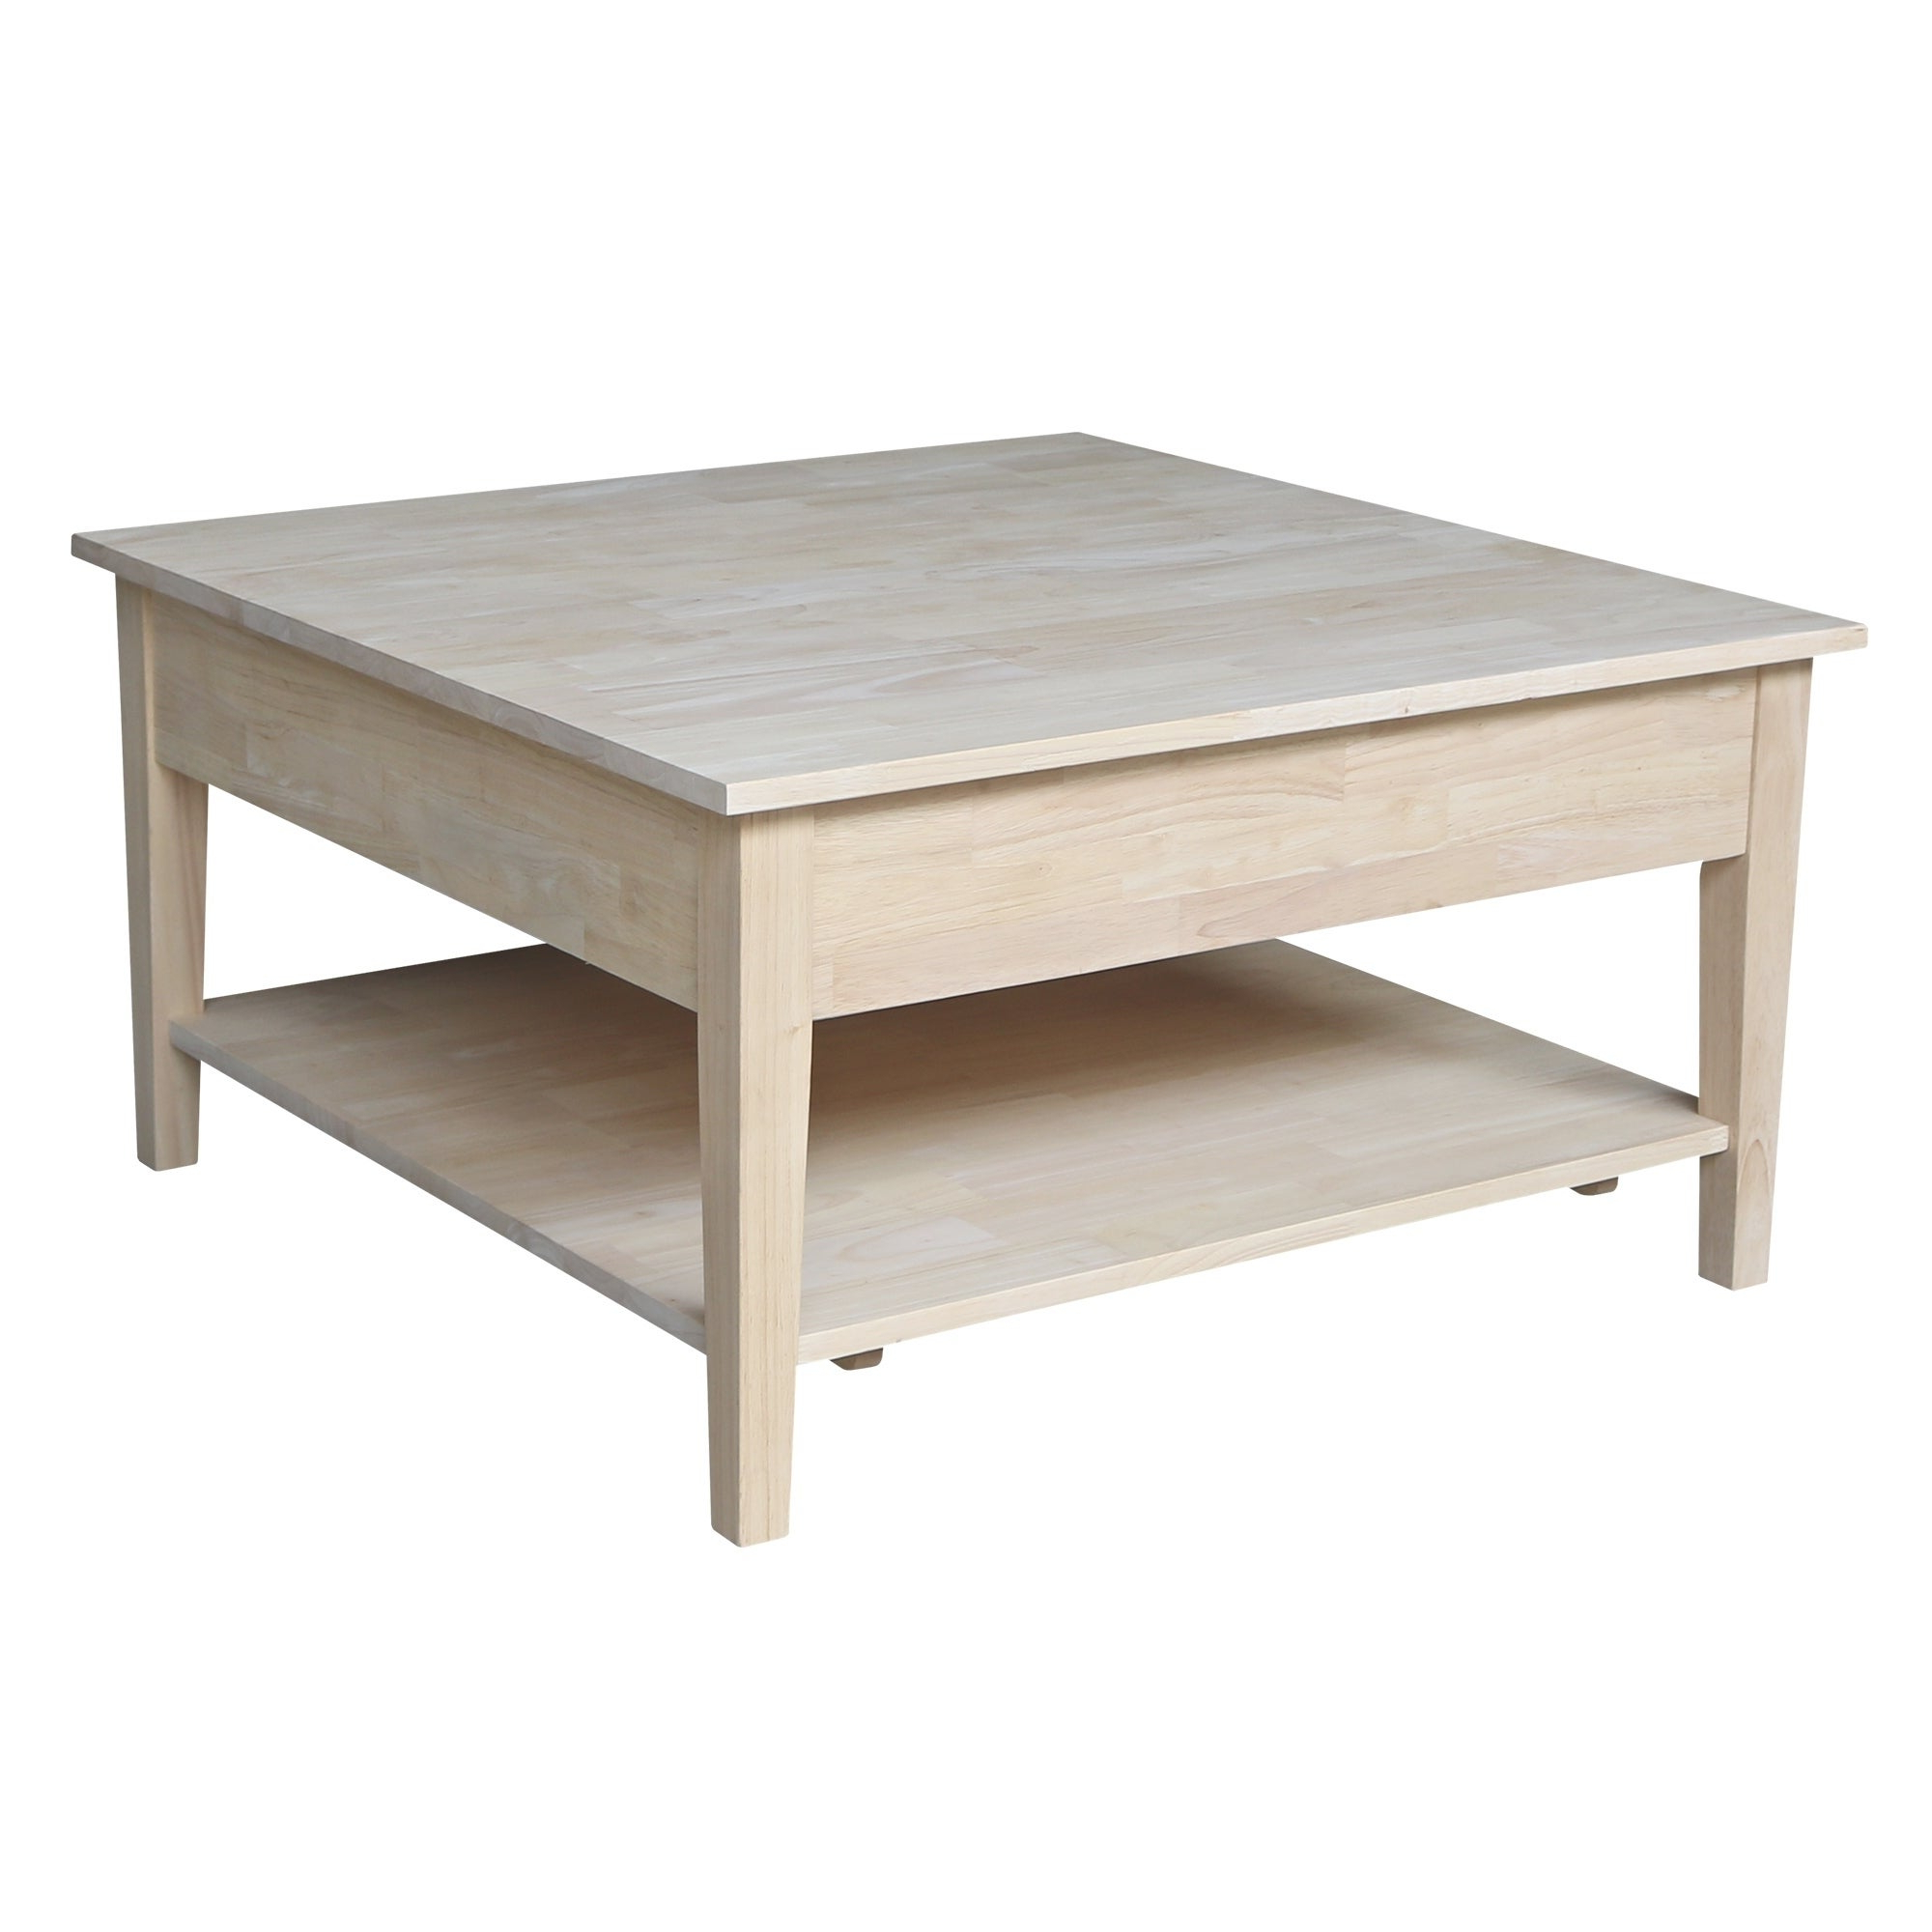 Popular Unfinished Solid Parawood Square Coffee Tables Inside Spencer Square Coffee Table – Unfinished (View 12 of 20)